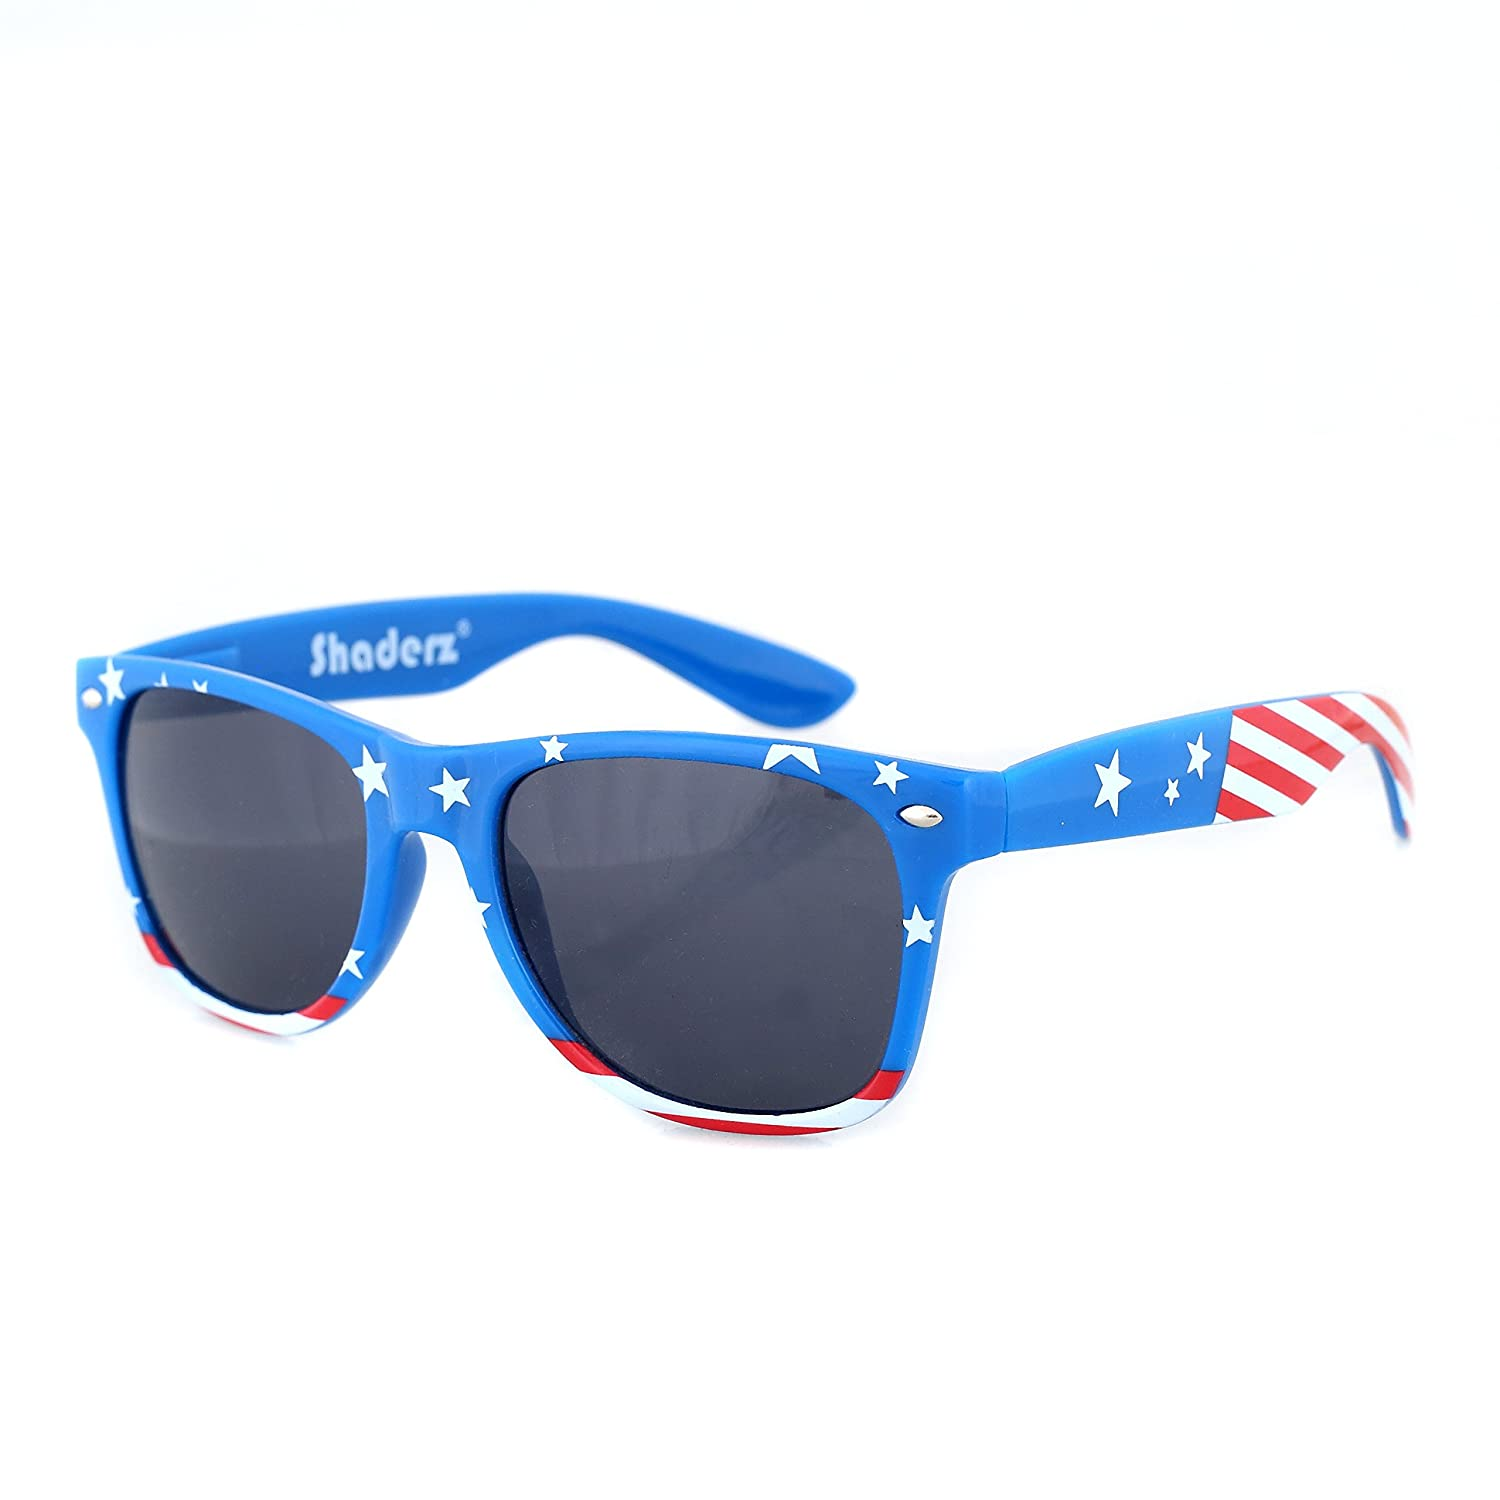 21ec54e9fdb1 VINTAGE INSPIRED FRAME DESIGN - These classic frames will never go out of  style. PATRIOTIC LOOK- America sunglasses have the American Flag printed on  them